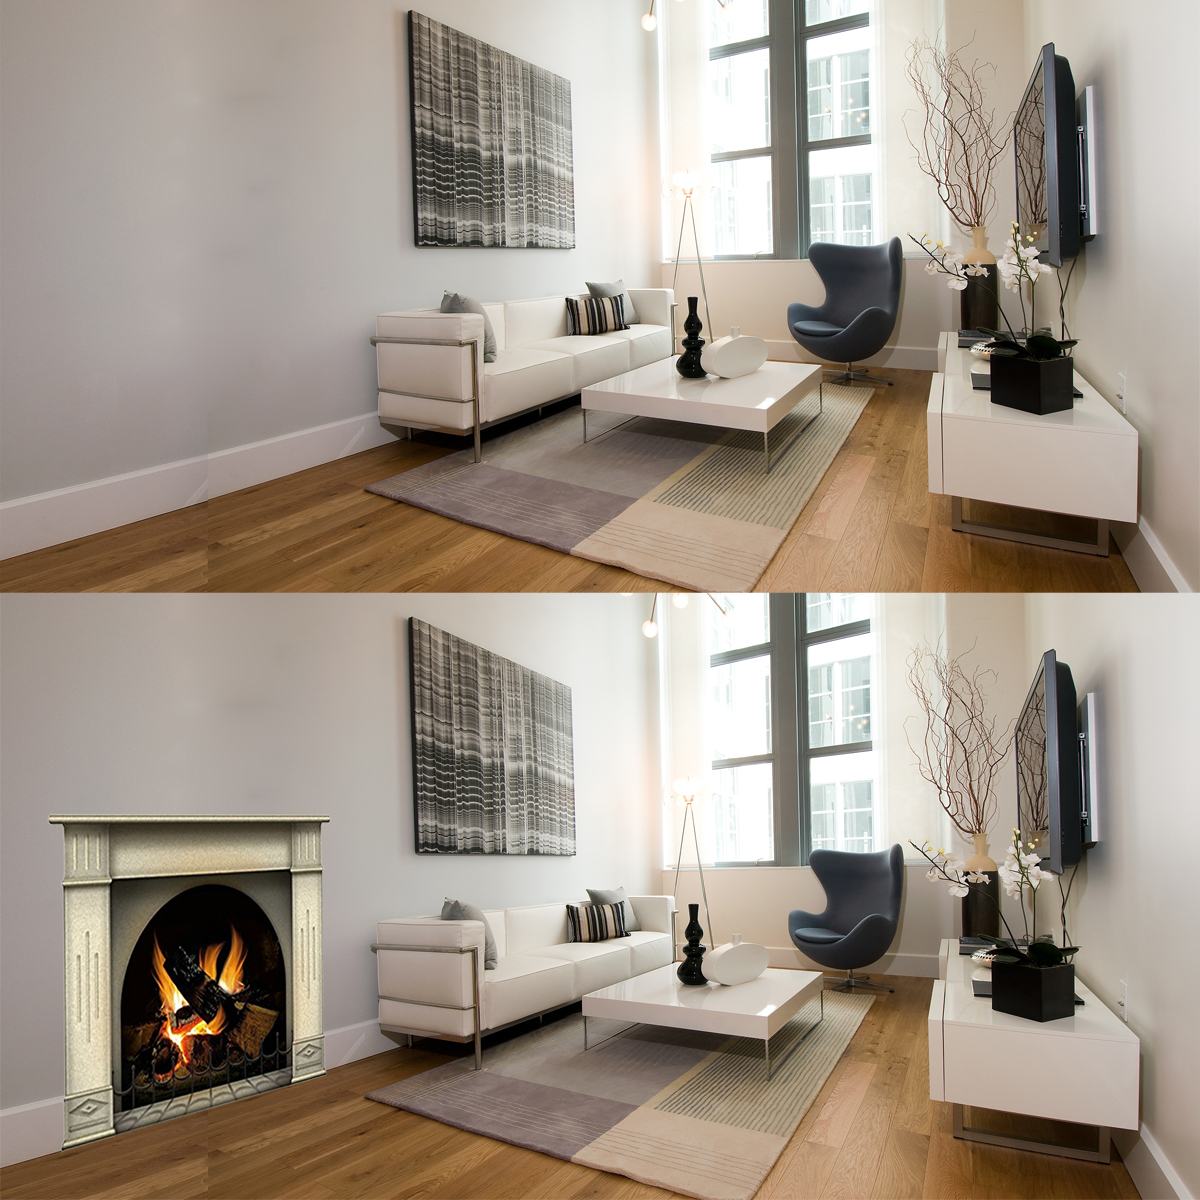 Fireplace Decal Cardboard Fireplace The Blog At Fireplacemall